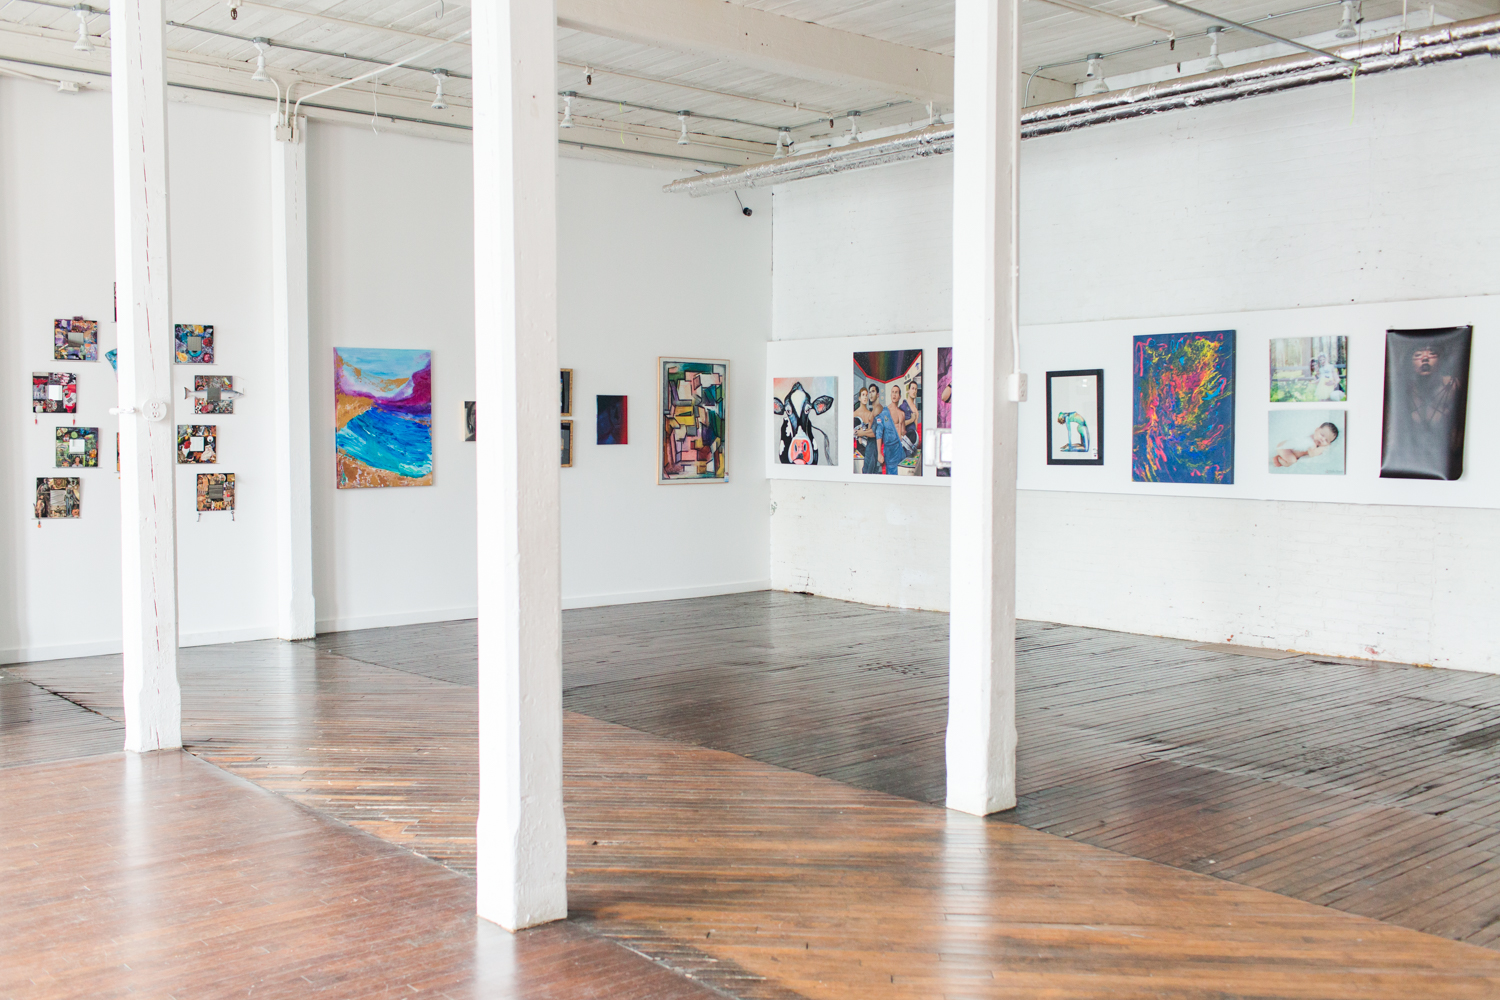 artist-studios-event-space-bridgeport-connecticut-305-knowlton